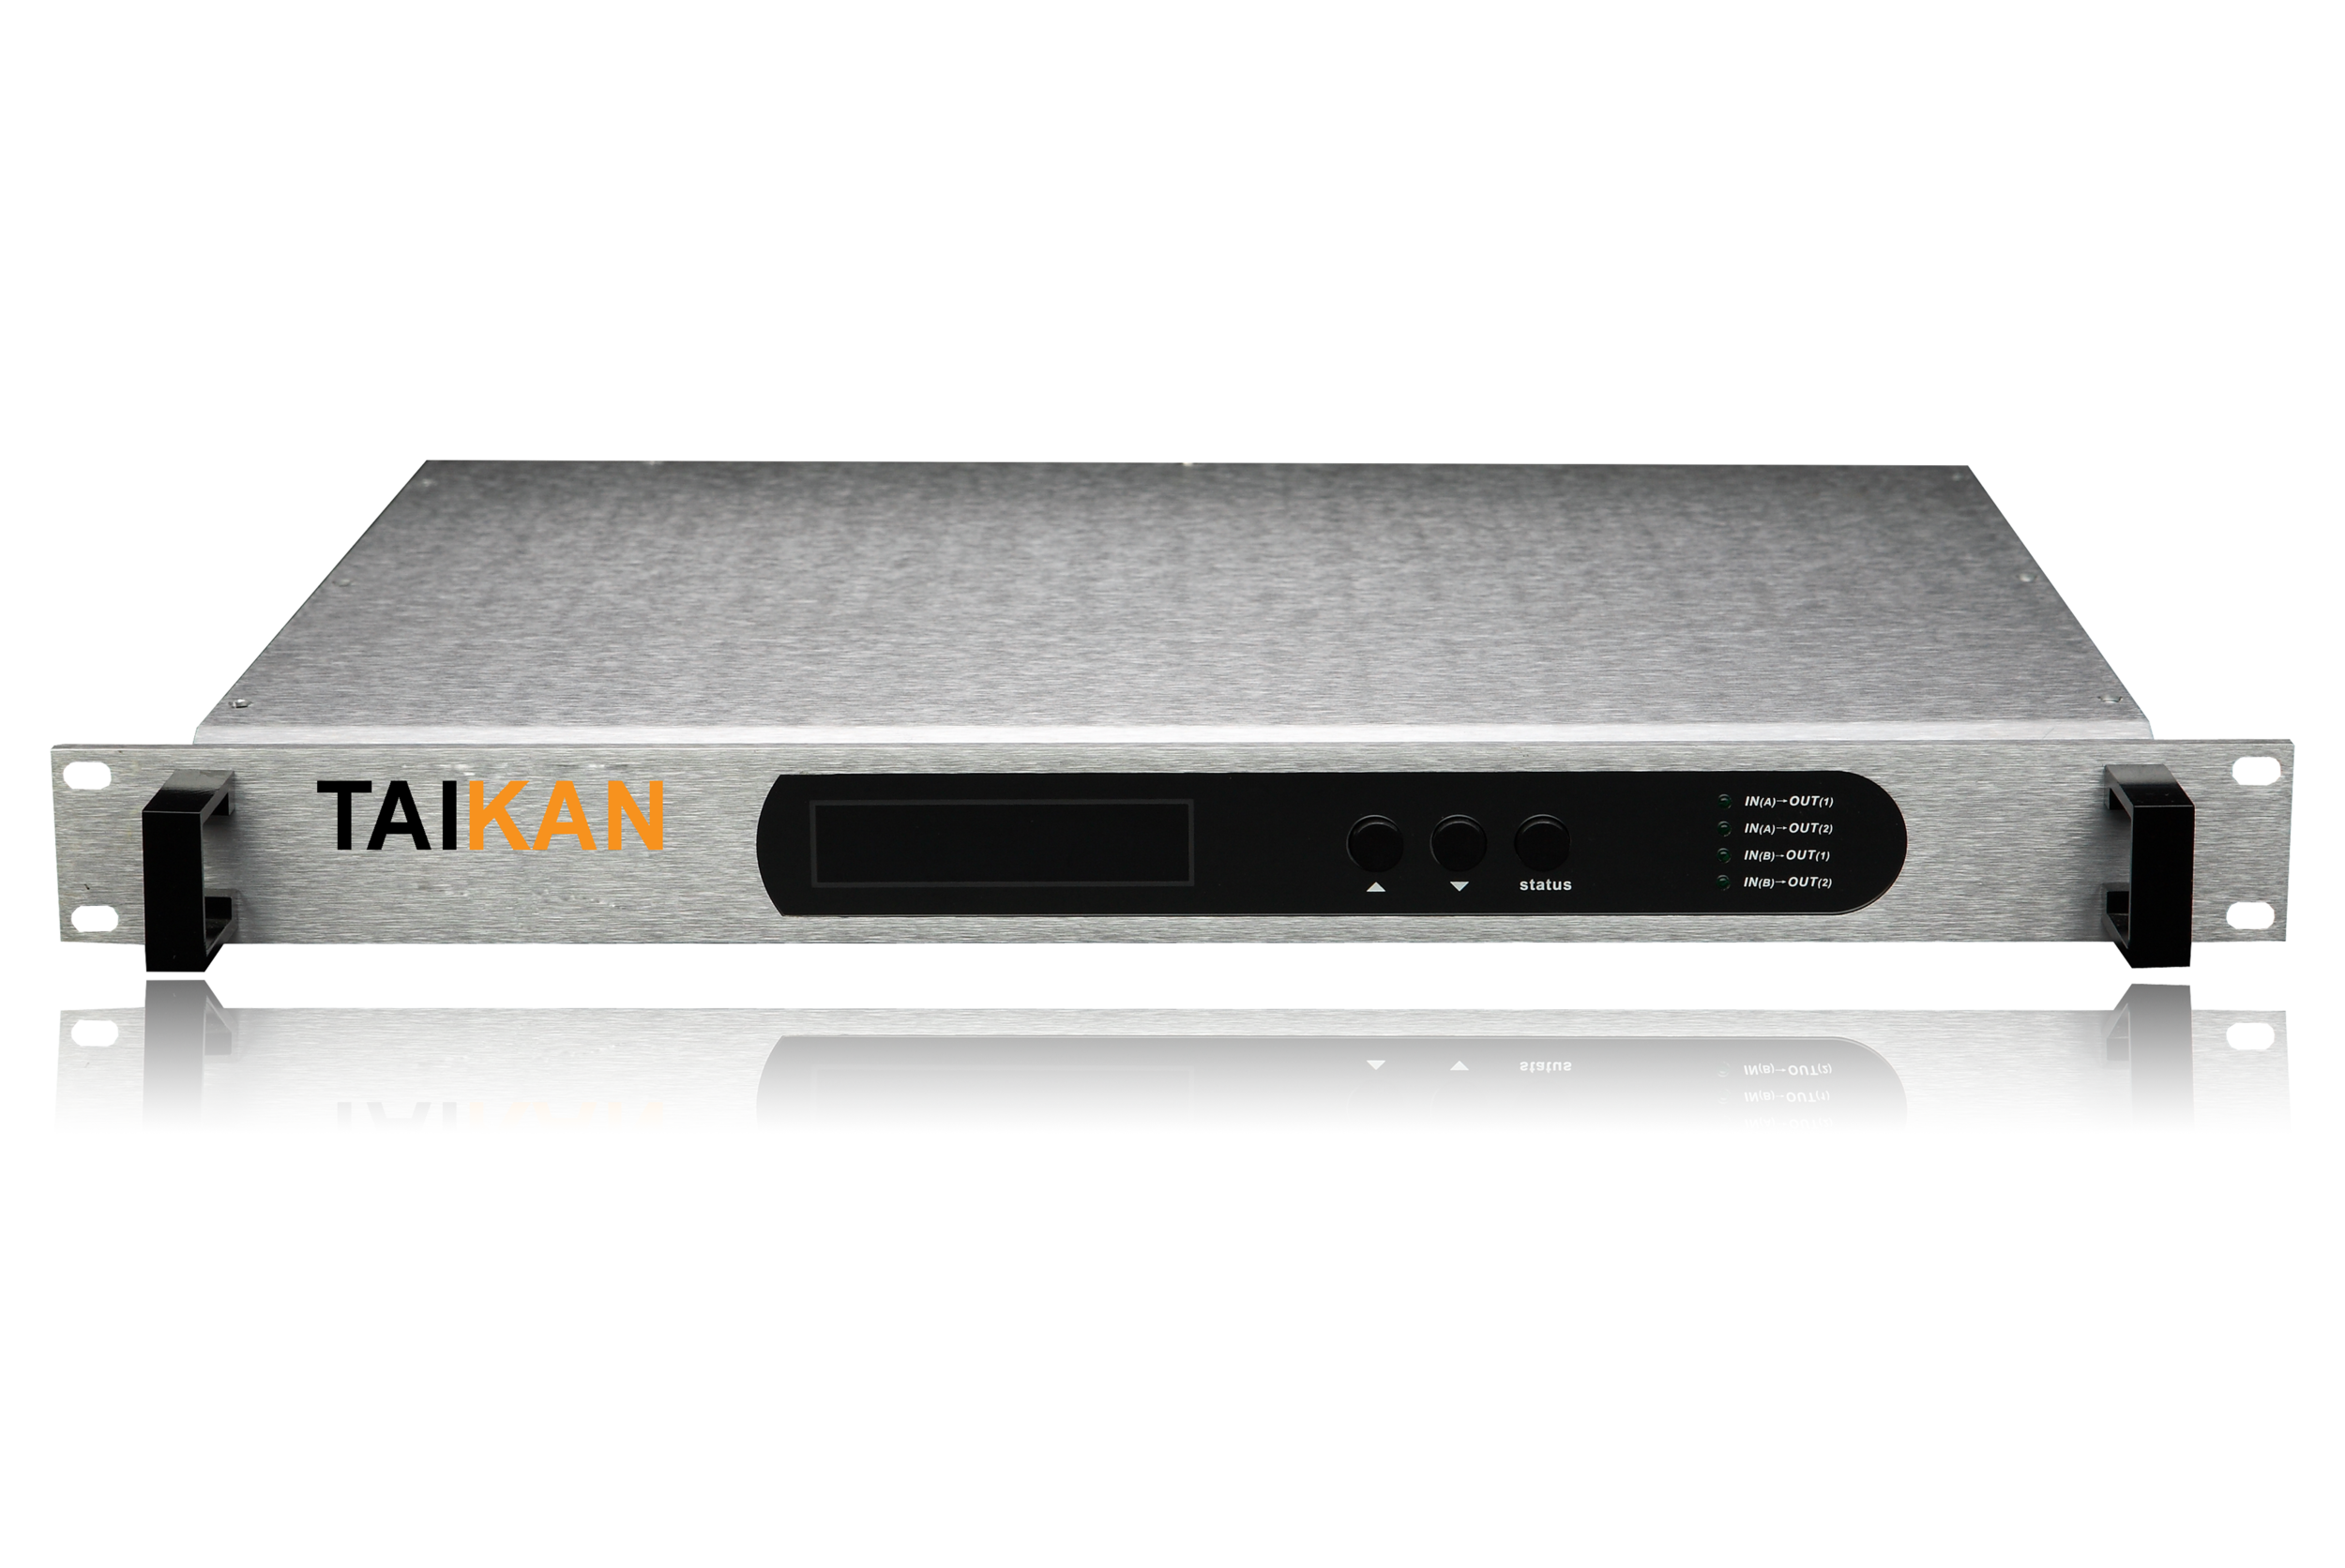 taikan optical switch for fiber hfc  network infrastructure equipment and hardware